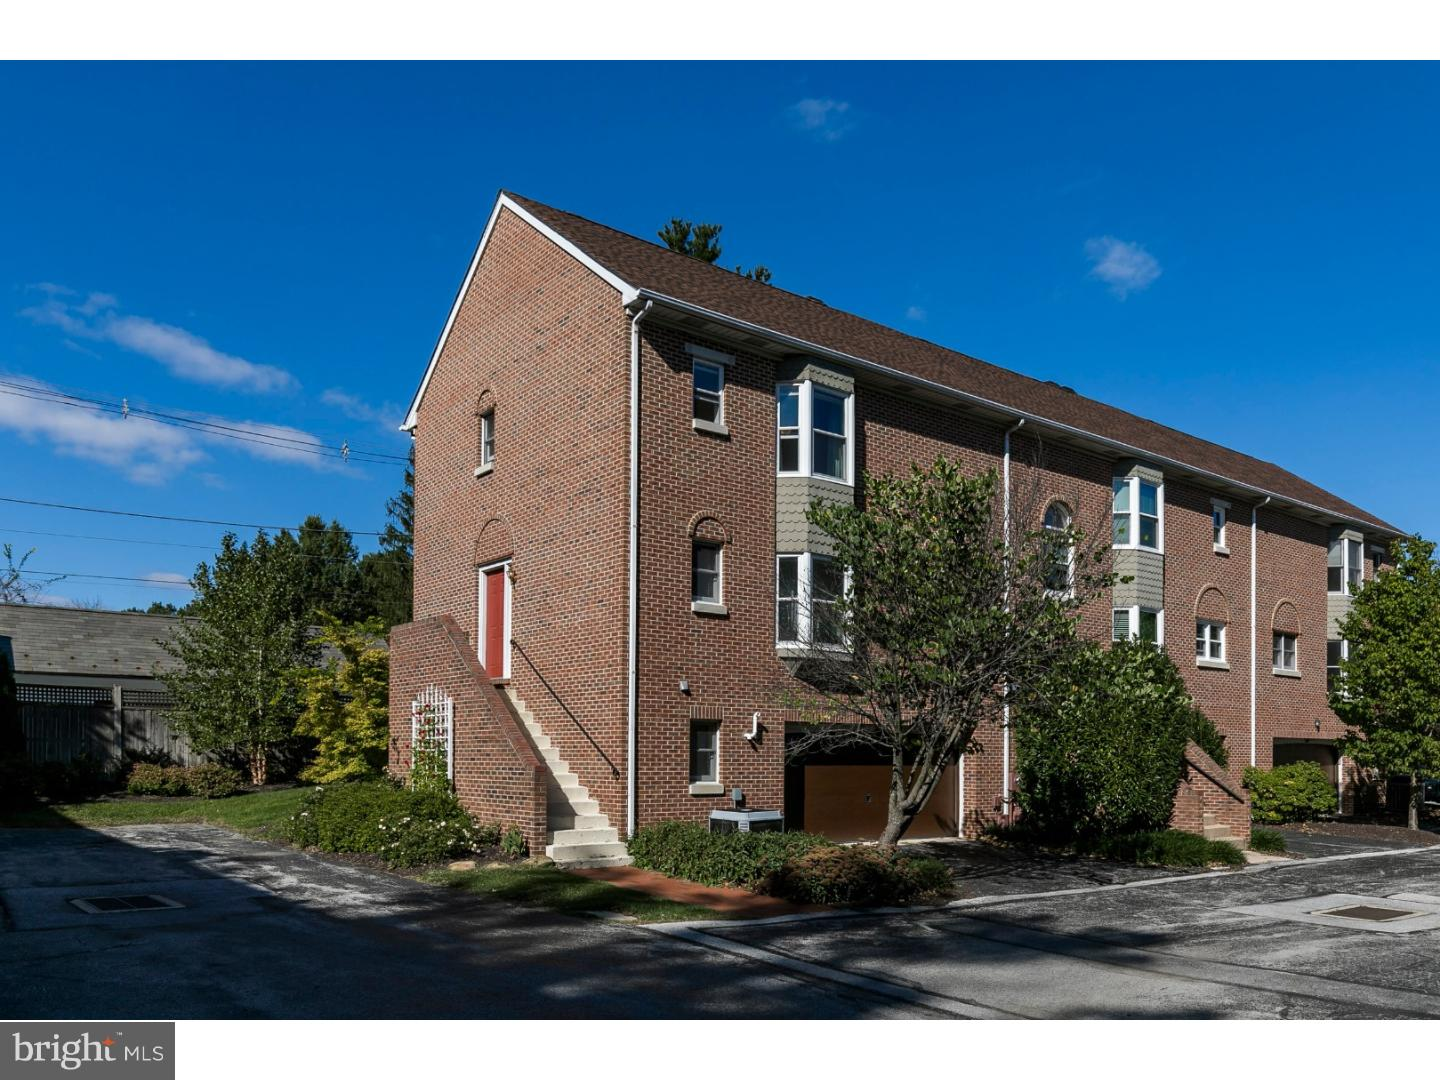 205 E Evans Street #11 West Chester, PA 19380